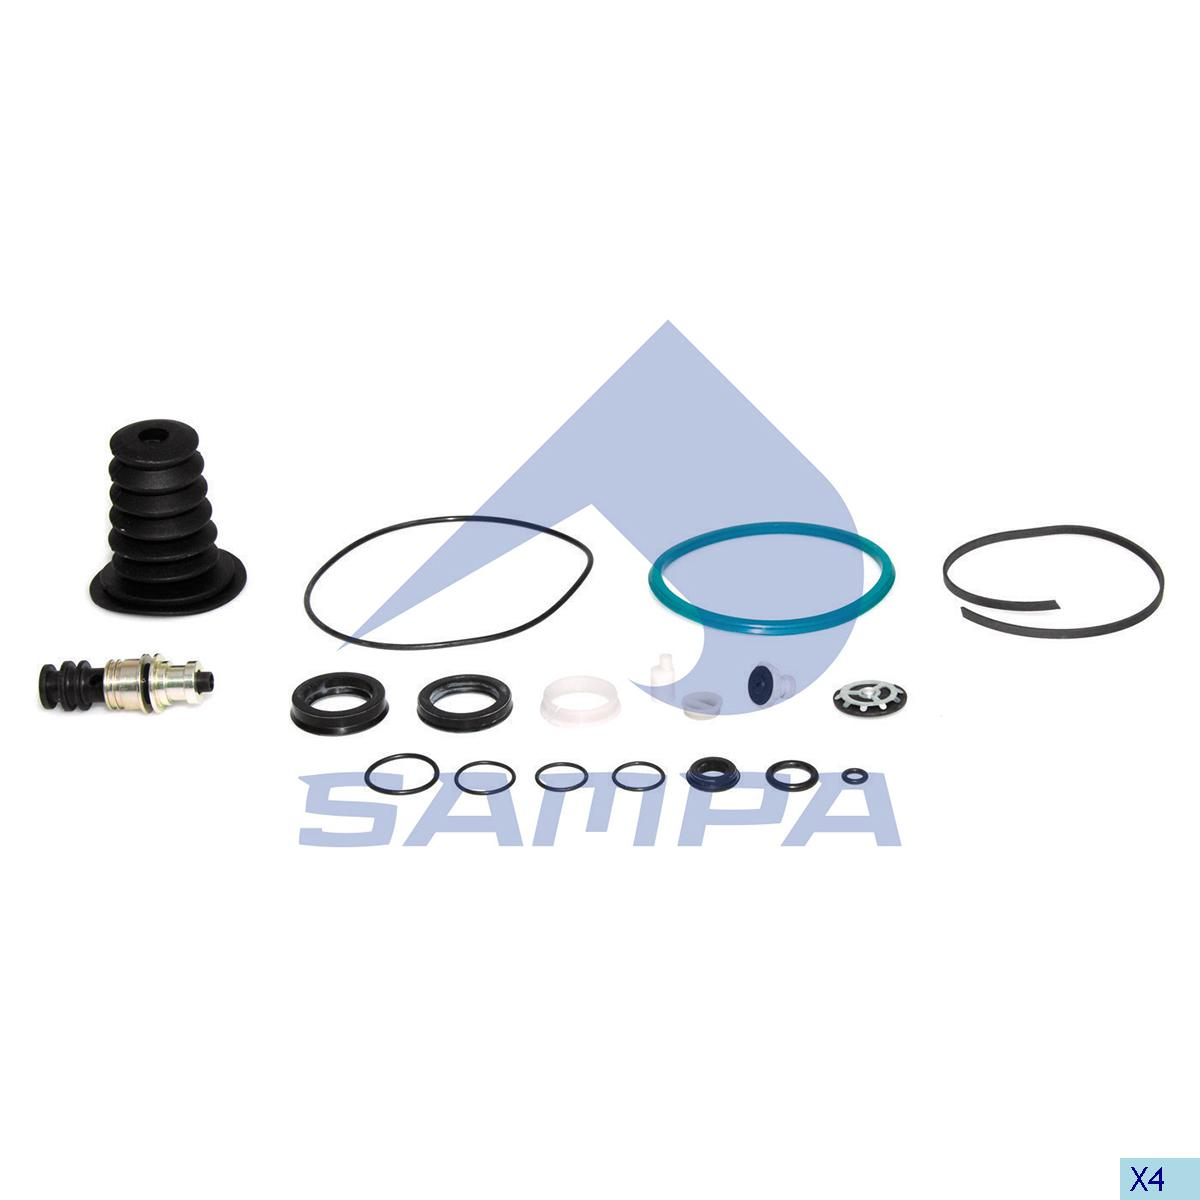 Repair Kit, Clutch Servo, R.V.I., Clutch